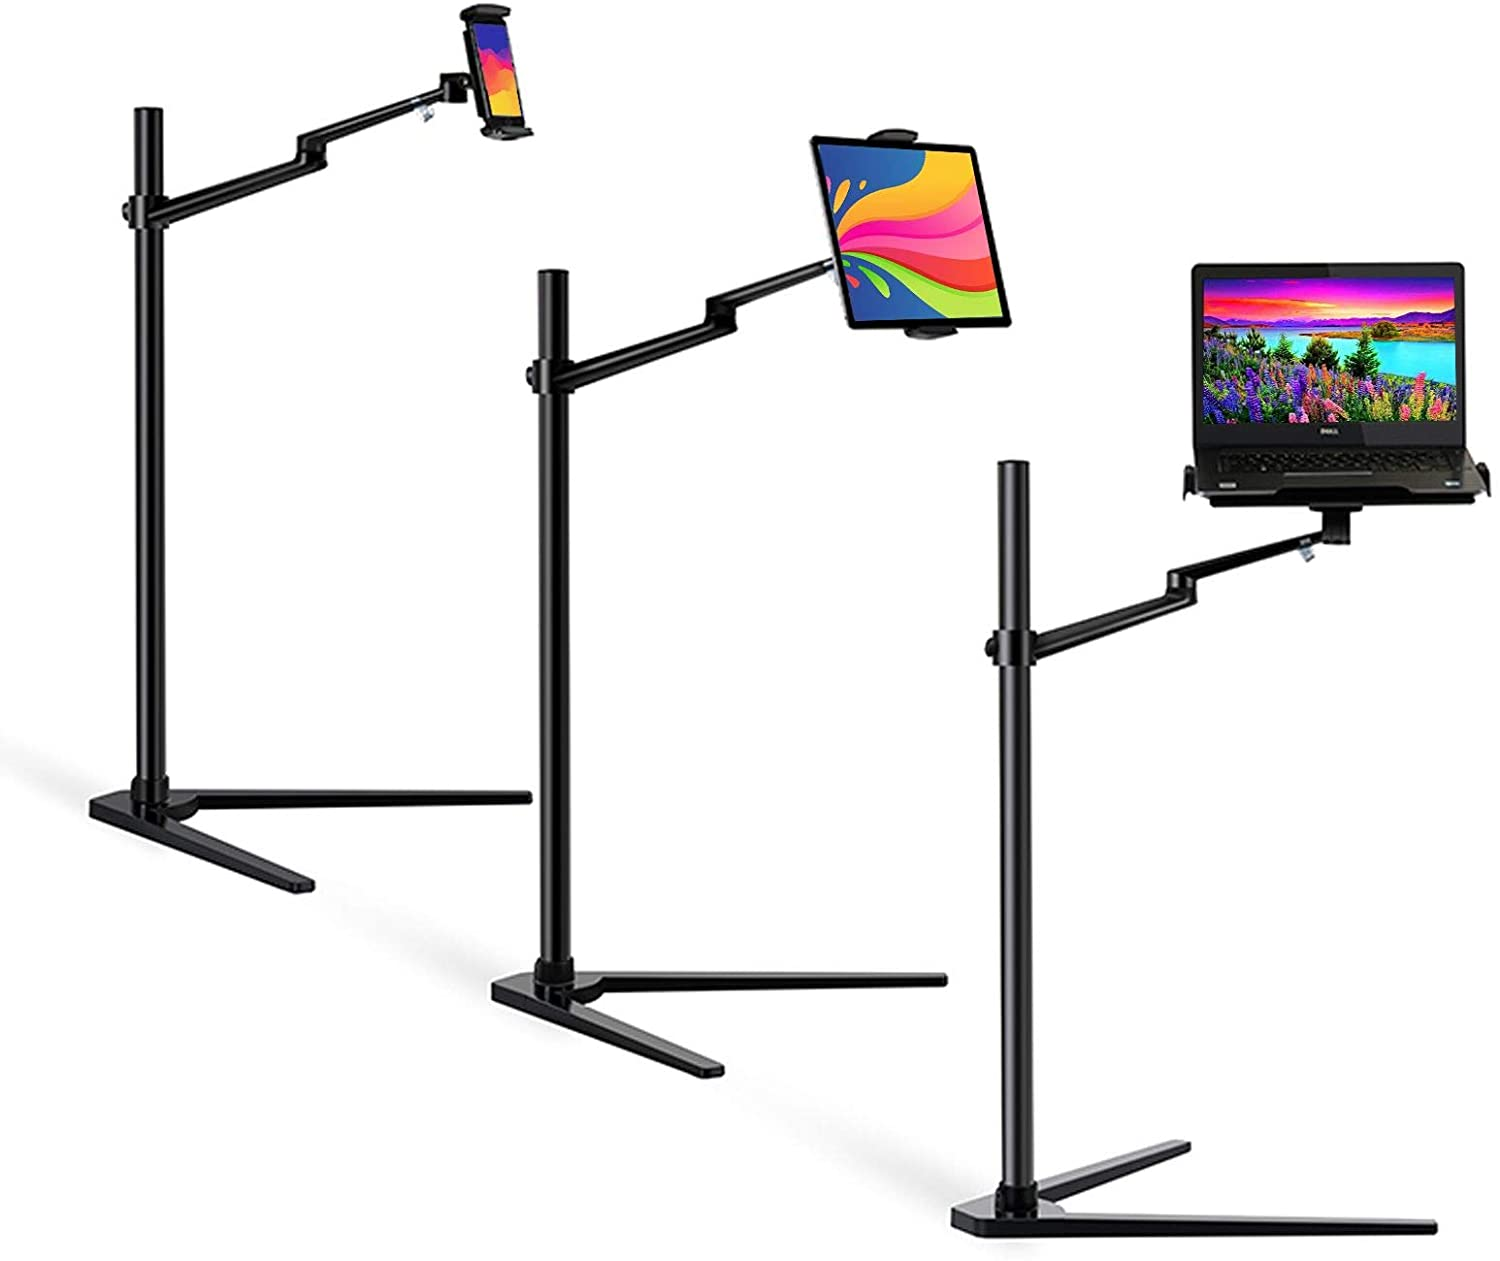 MagicHold 3 in 1 360 Degree Rotating Height Adjustable Laptop Tablet Stand for Bed,Floor,Compatible with Ipad Pro 12.9 Inch, IPAD, MacBook Pro/Air,MS Surface Pro,MS Surface Book